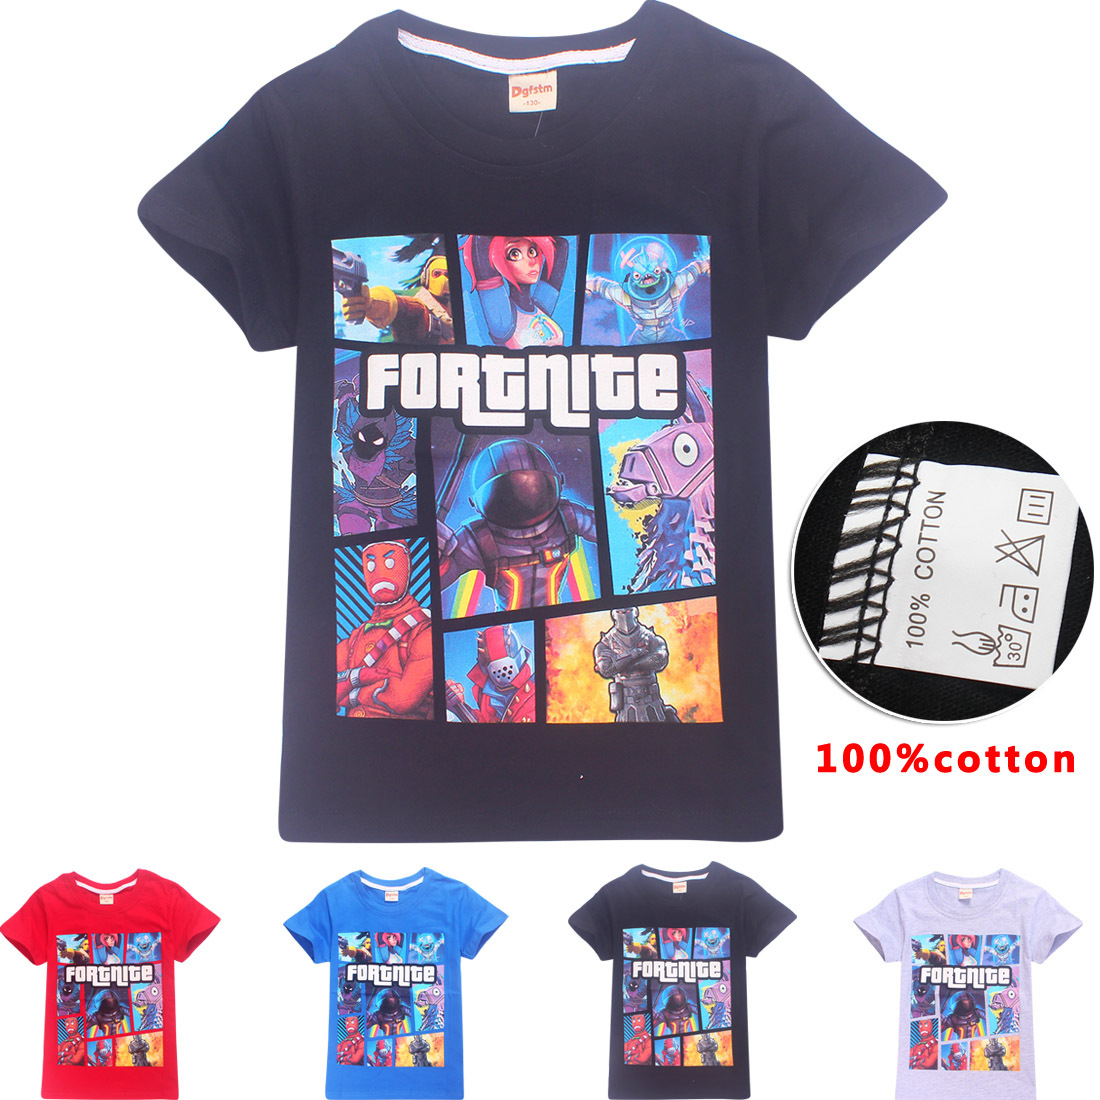 Hot Game Fortnite Summer T-shirt Short Sleeve T Shirt Tops Tees Teenager Big Boys Girls Casual Sports Clothes Kids Black T Shirt